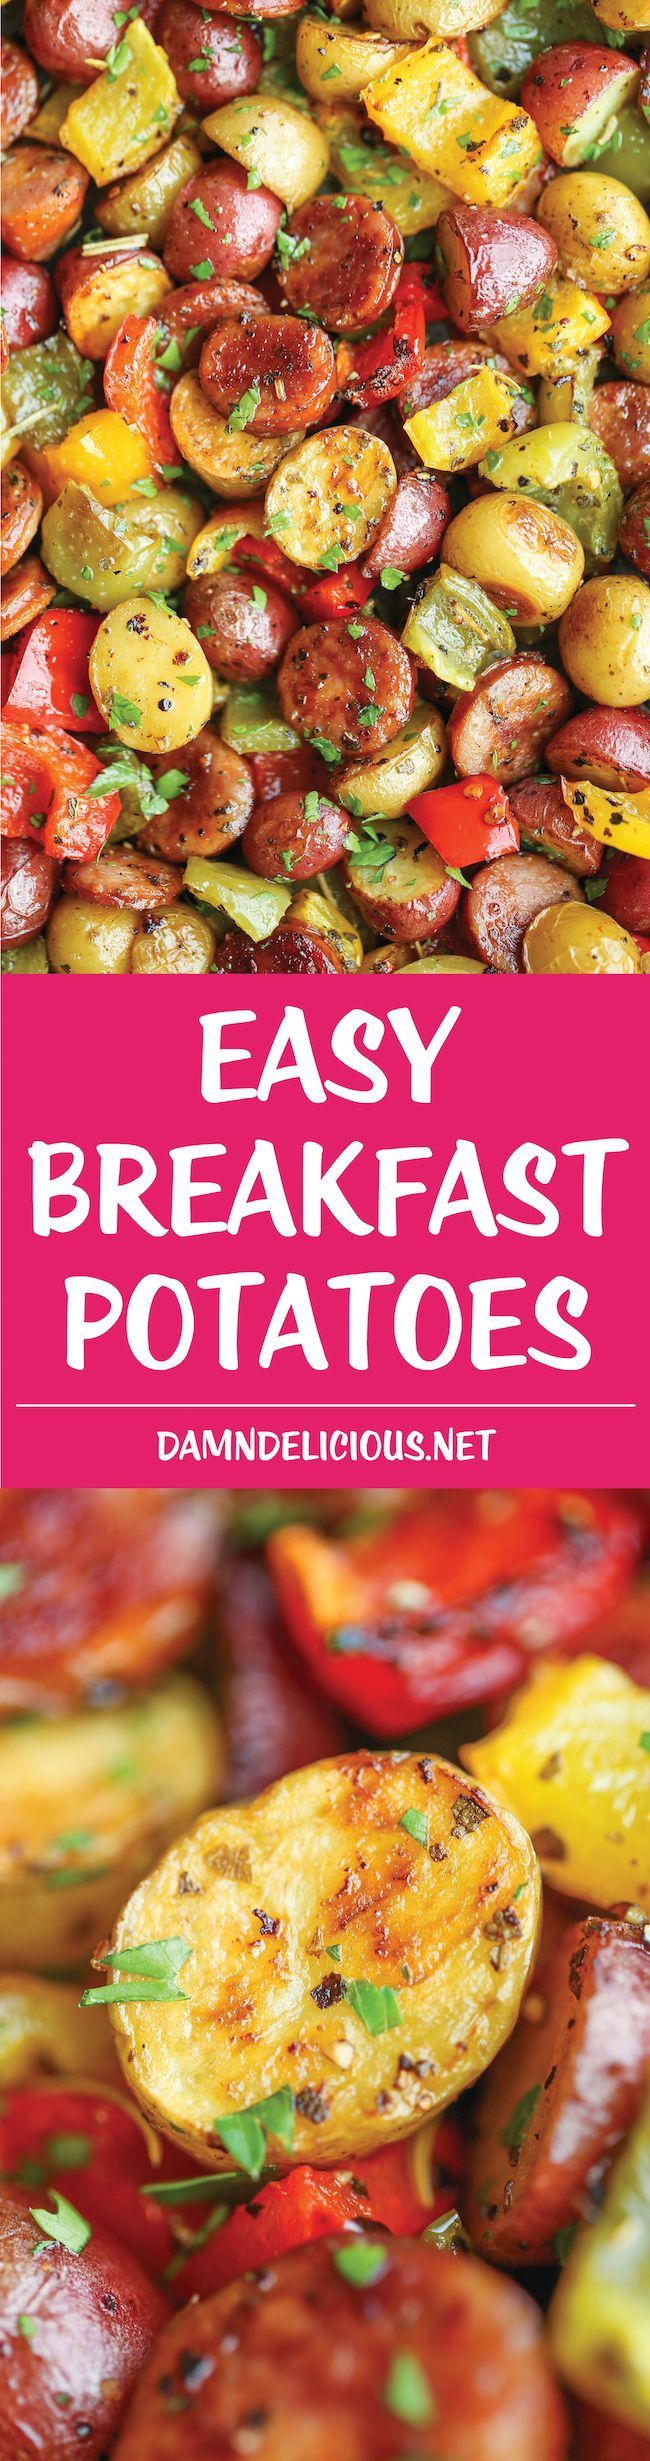 Easy Breakfast Potatoes - The BEST and EASIEST breakfast potatoes ever. No…